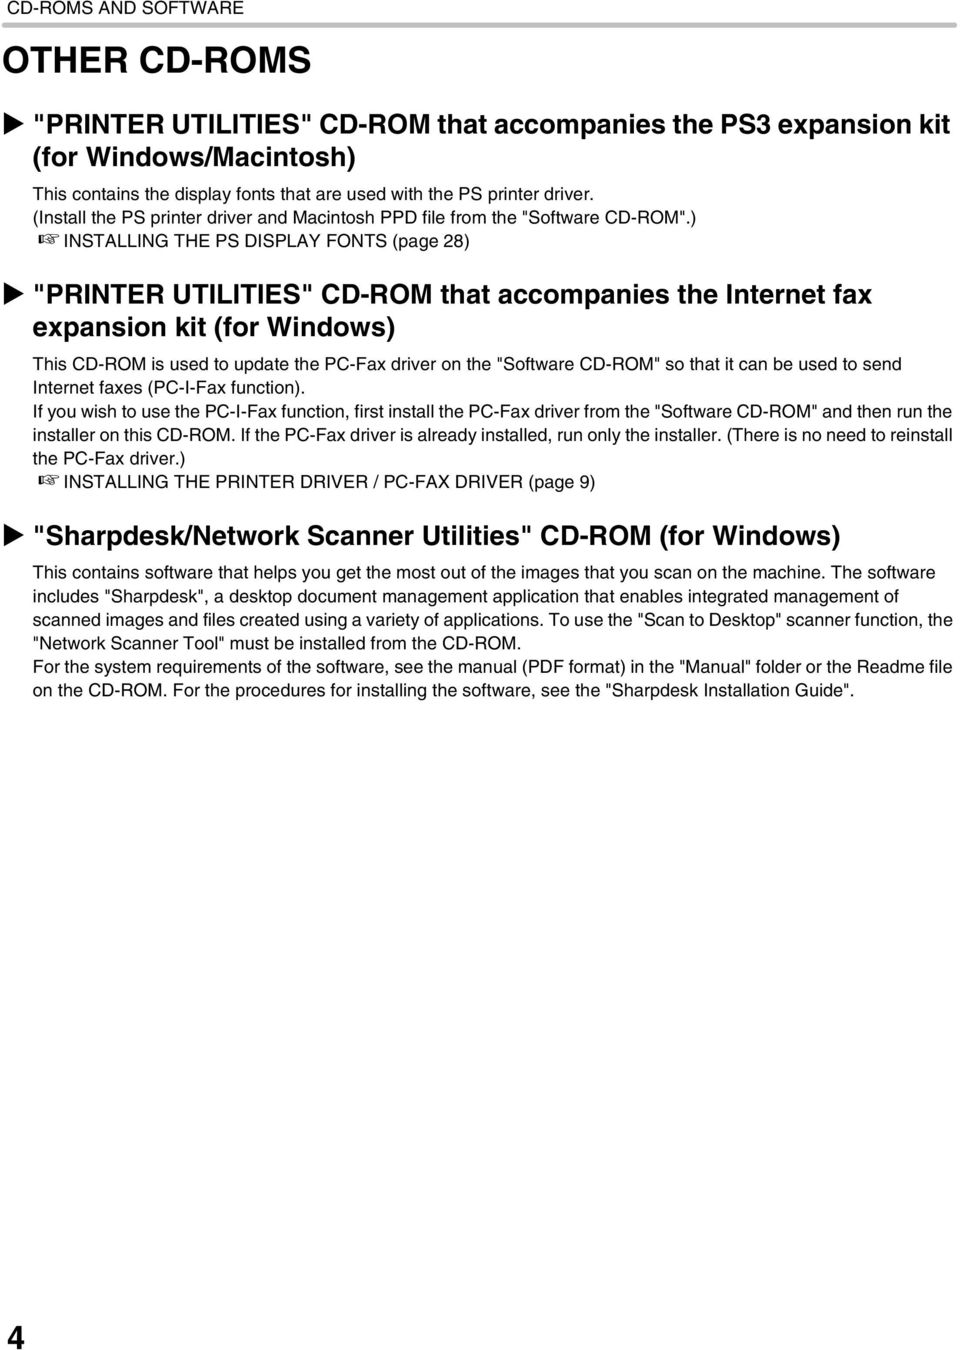 ") INSTALLING THE PS DISPLAY FONTS (page 28) ""PRINTER UTILITIES"" CD-ROM that accompanies the Internet fax expansion kit (for Windows) This CD-ROM is used to update the PC-Fax driver on the ""Software"